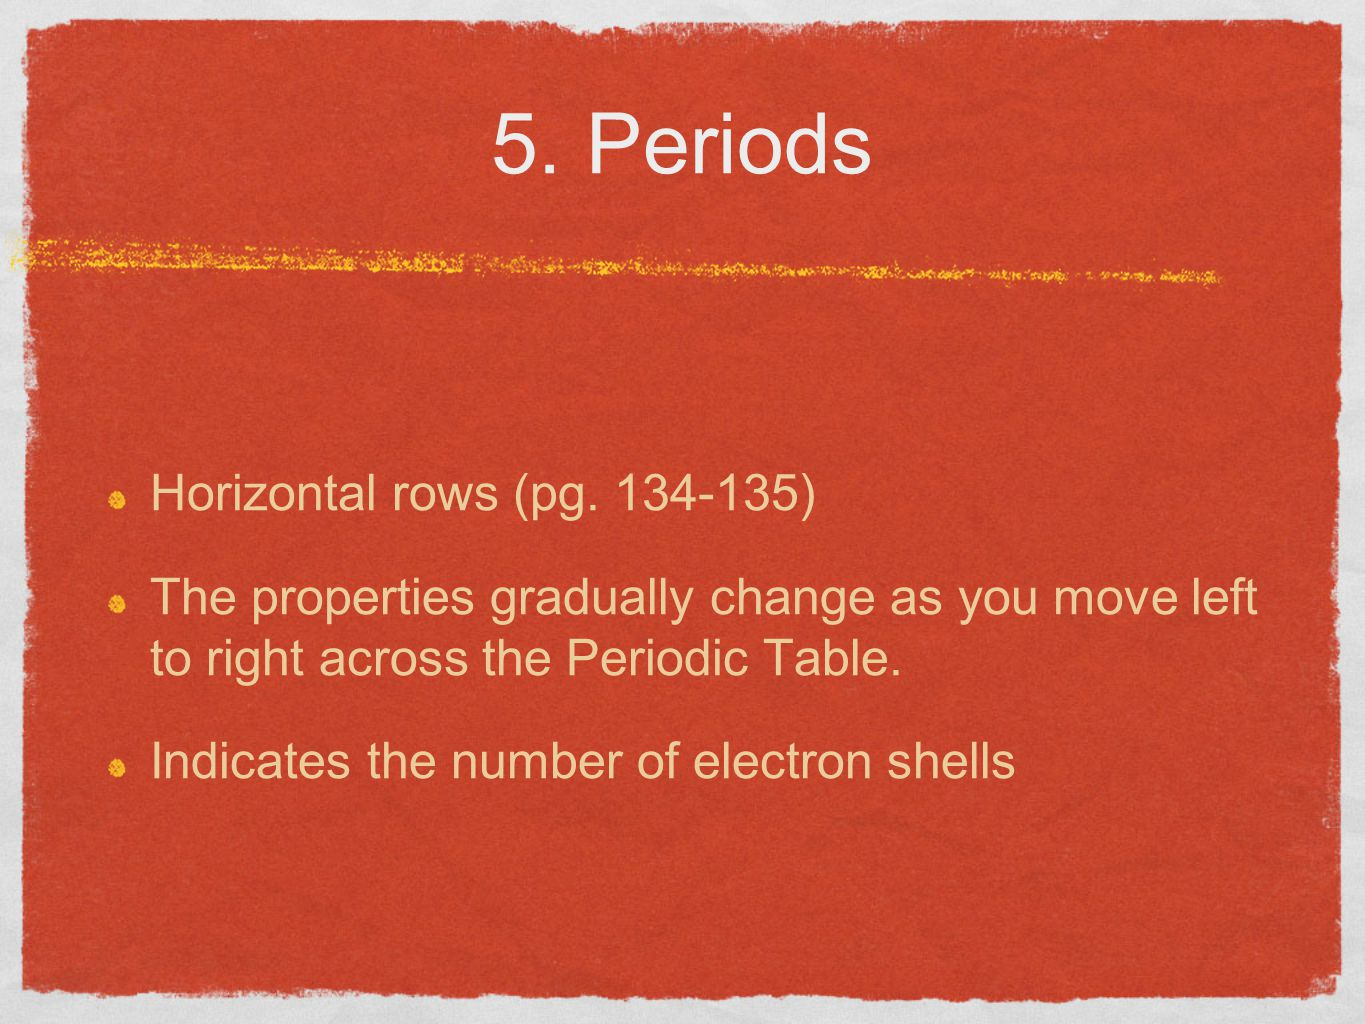 5. Periods Horizontal rows (pg. 134-135)